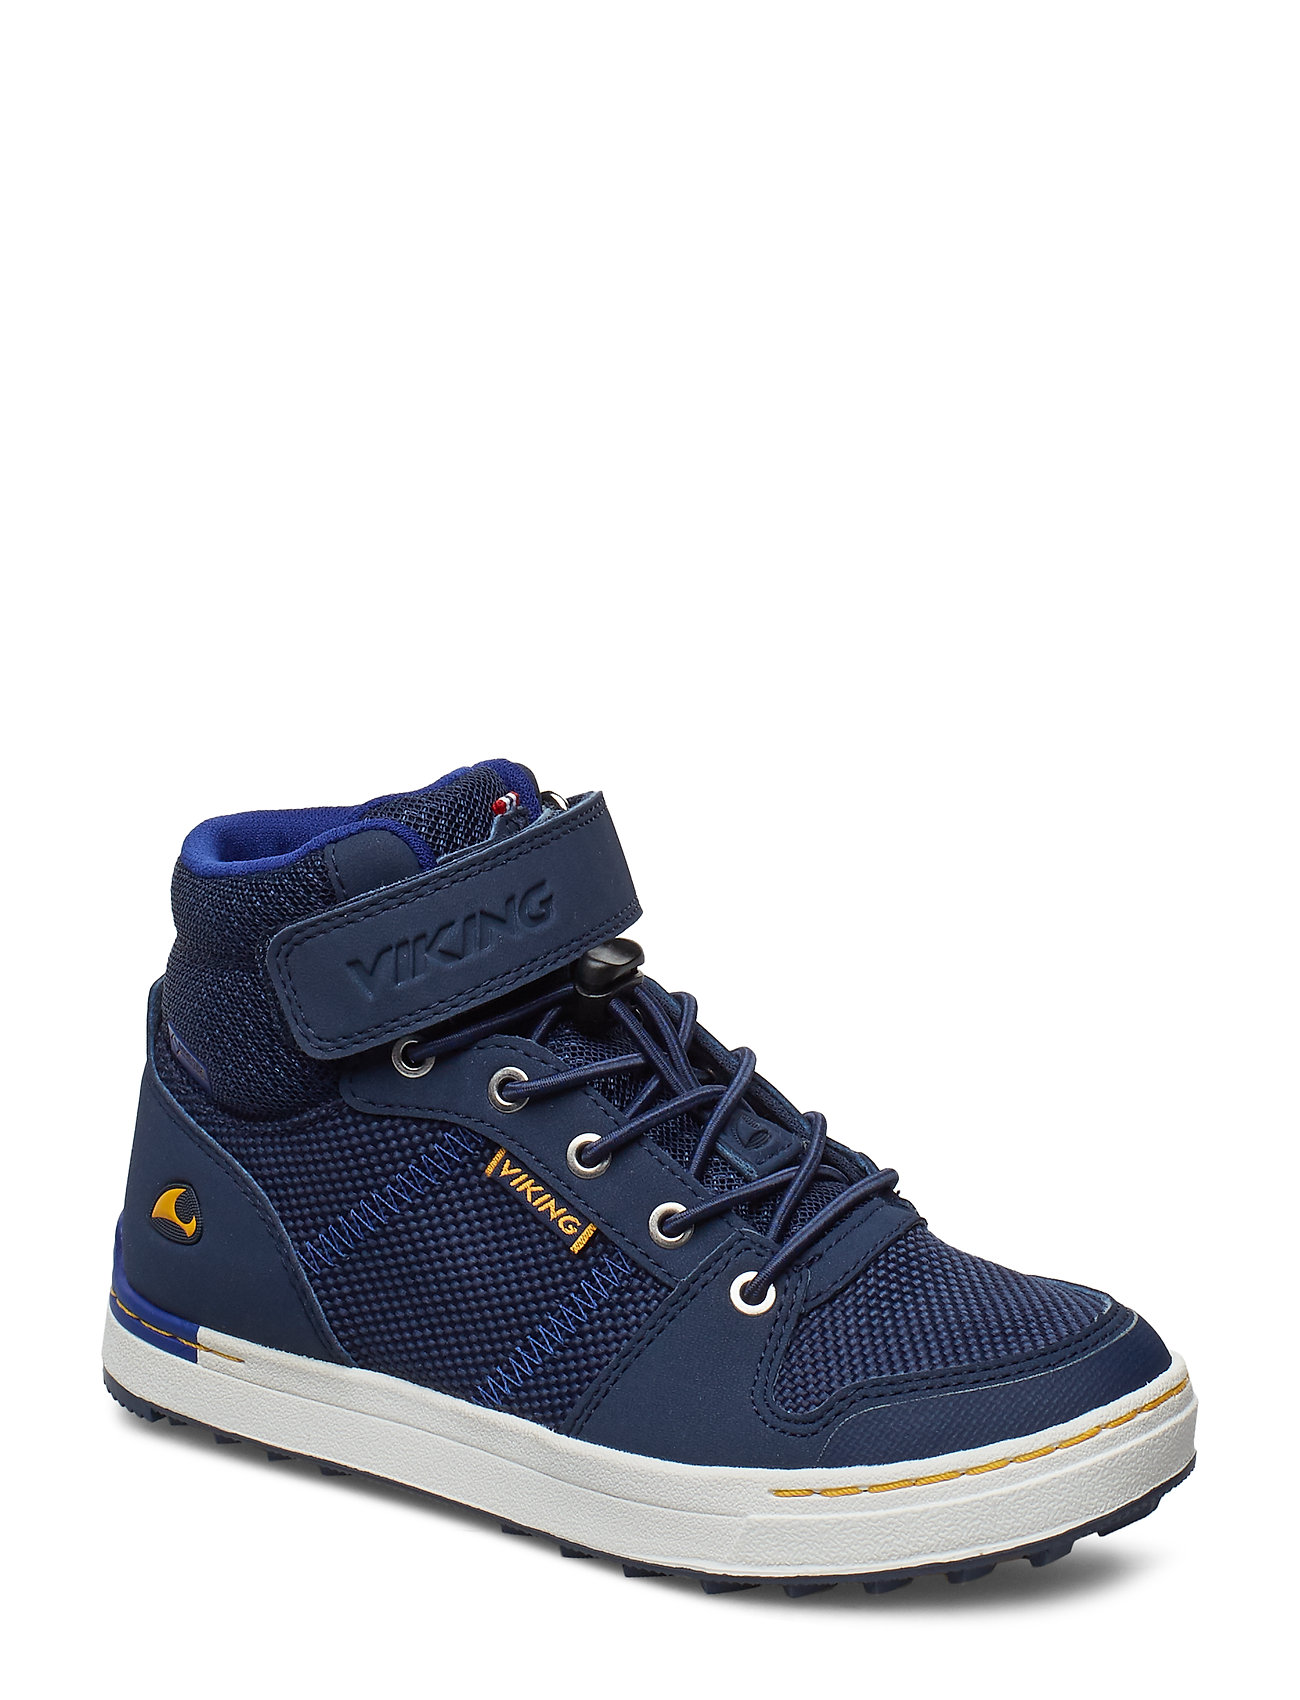 Viking Tonsen Mid Kids GTX - NAVY/DARK BLUE